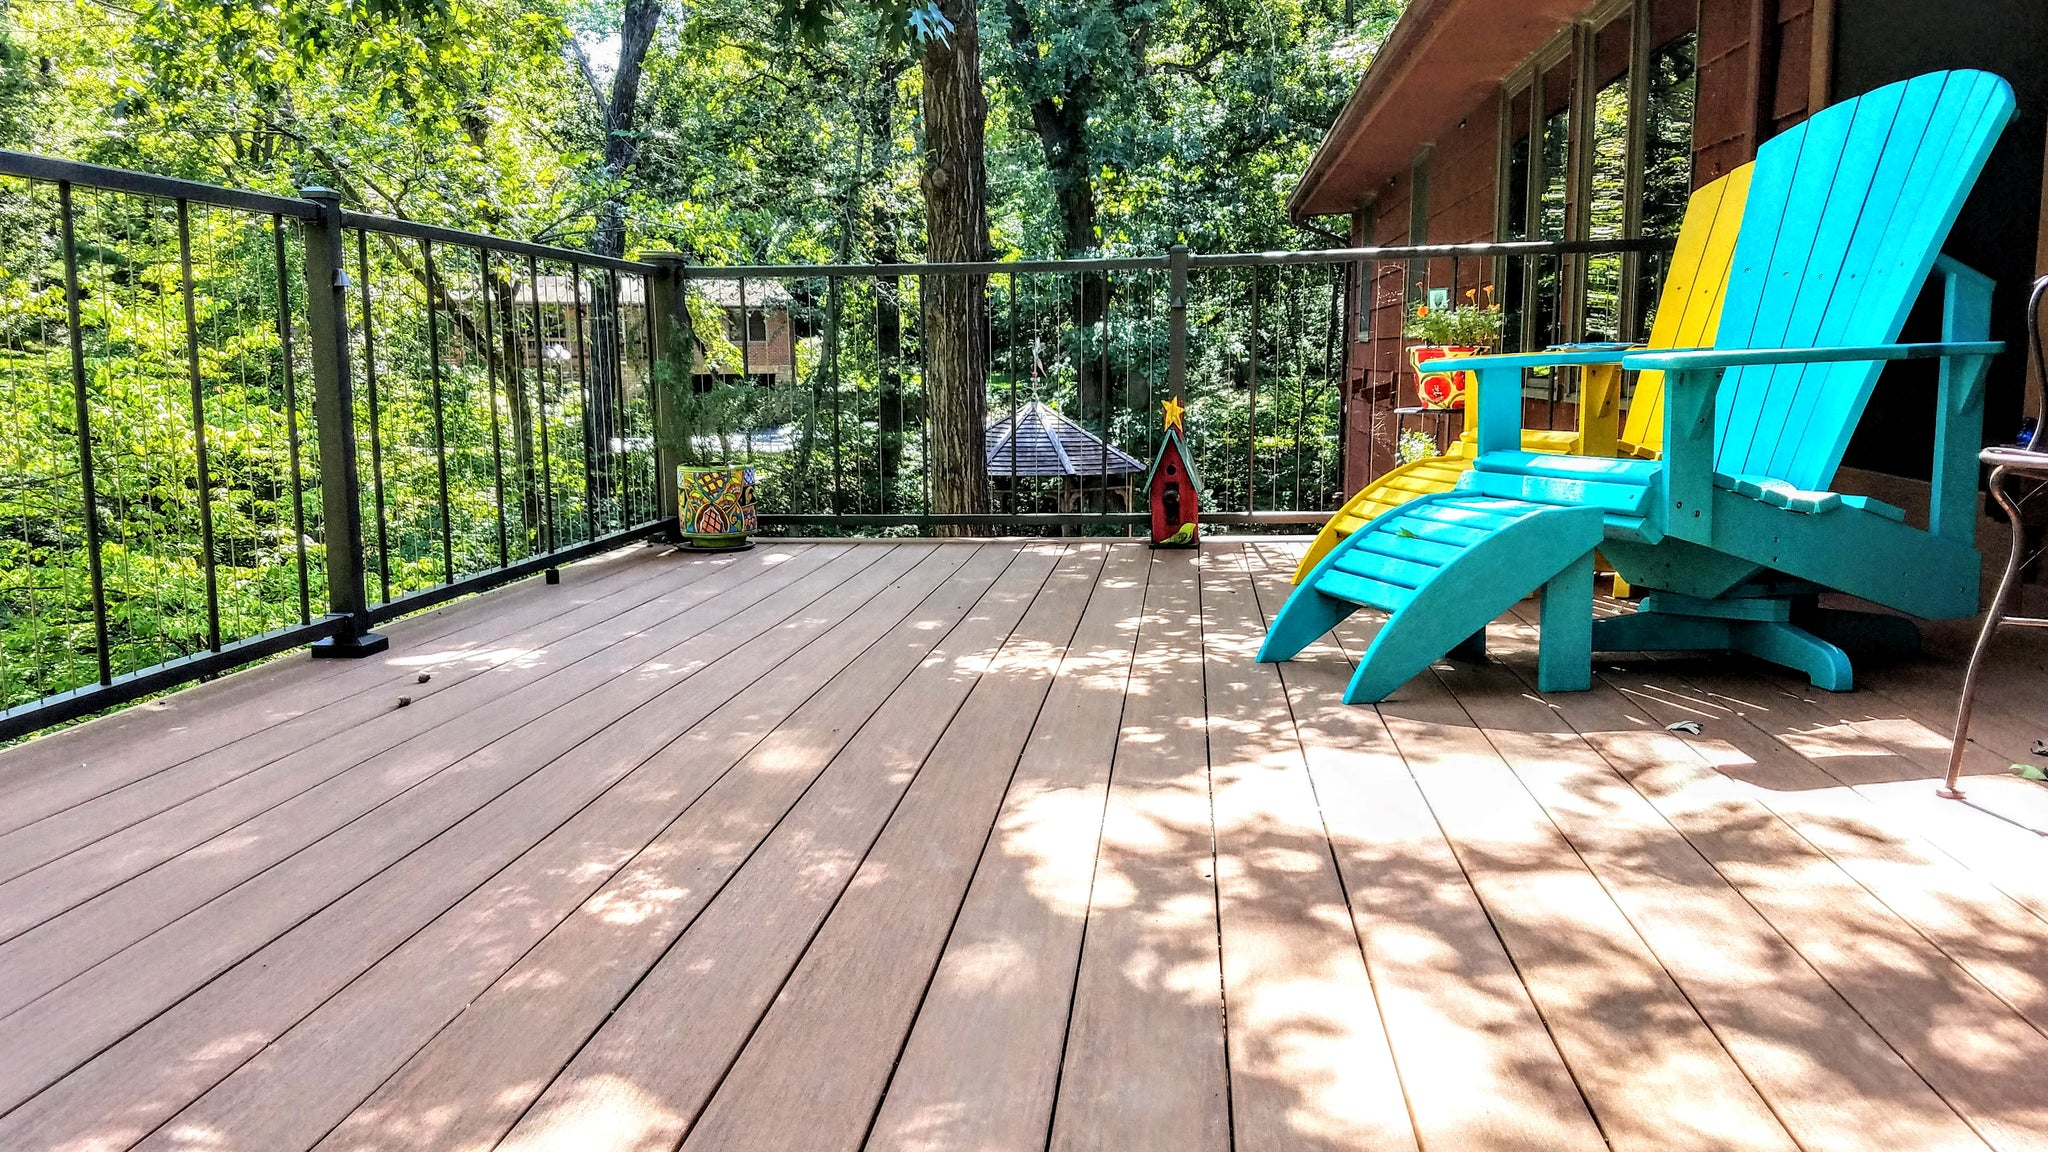 C80 VertiCable deck railing has vertical cables made from stainless steel for best railing visiablilty a type of see-threw railing